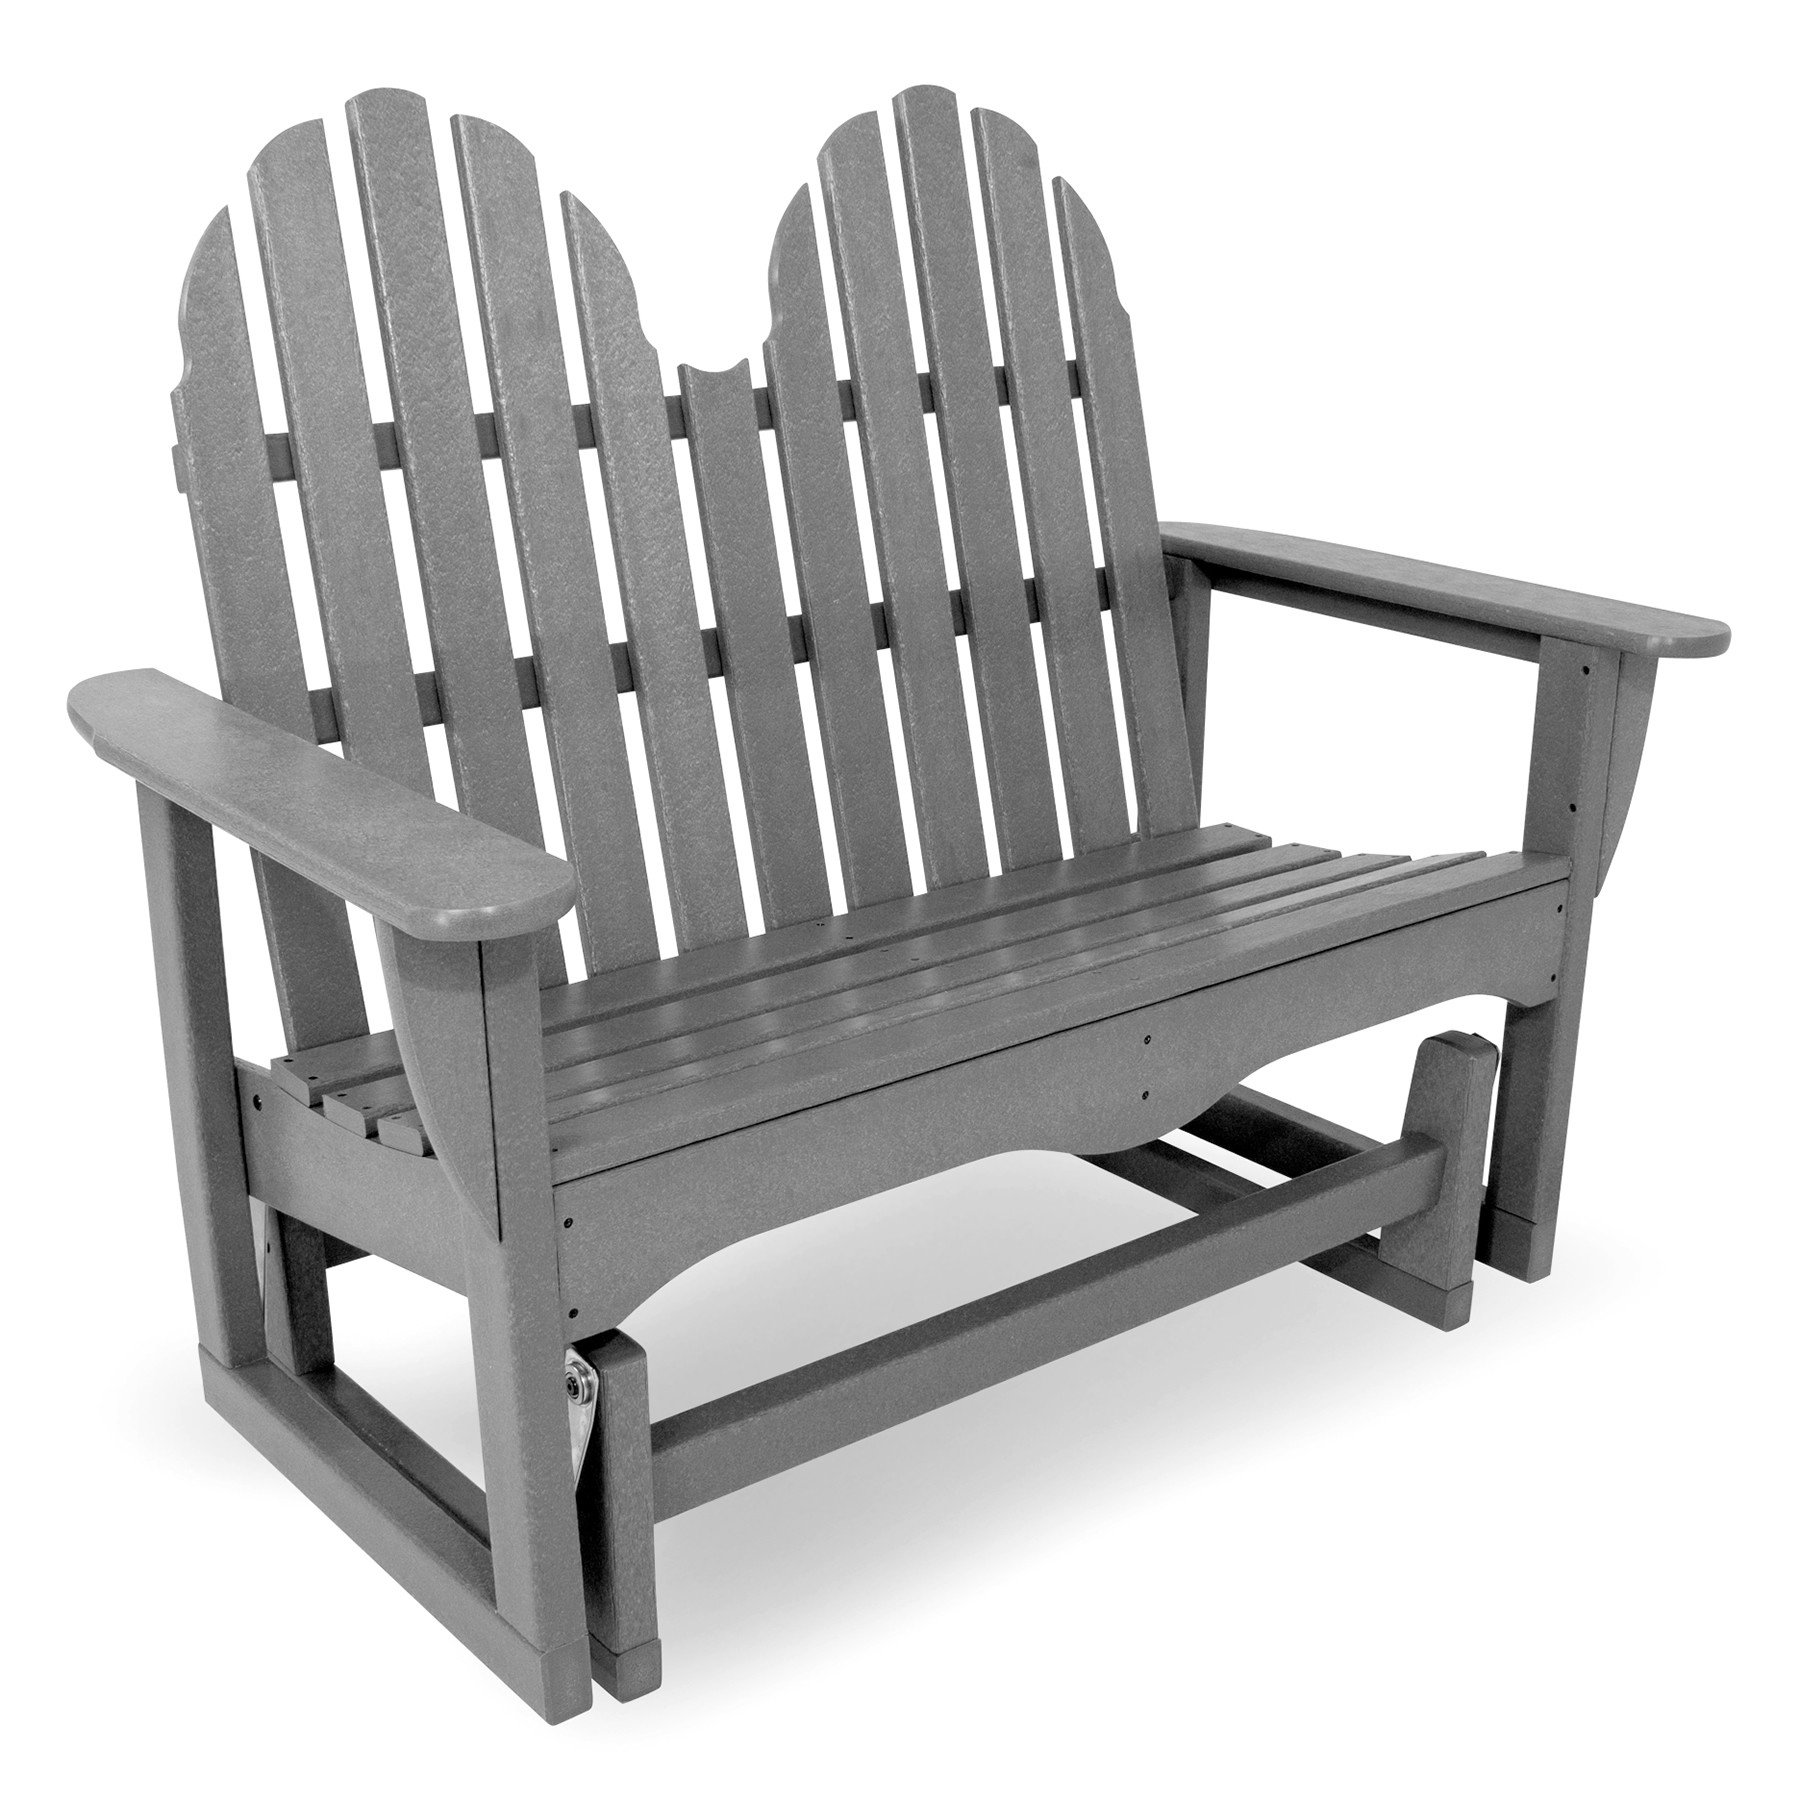 polywood classic adirondack chair wooden outdoor 48 in glider bench furniture collections